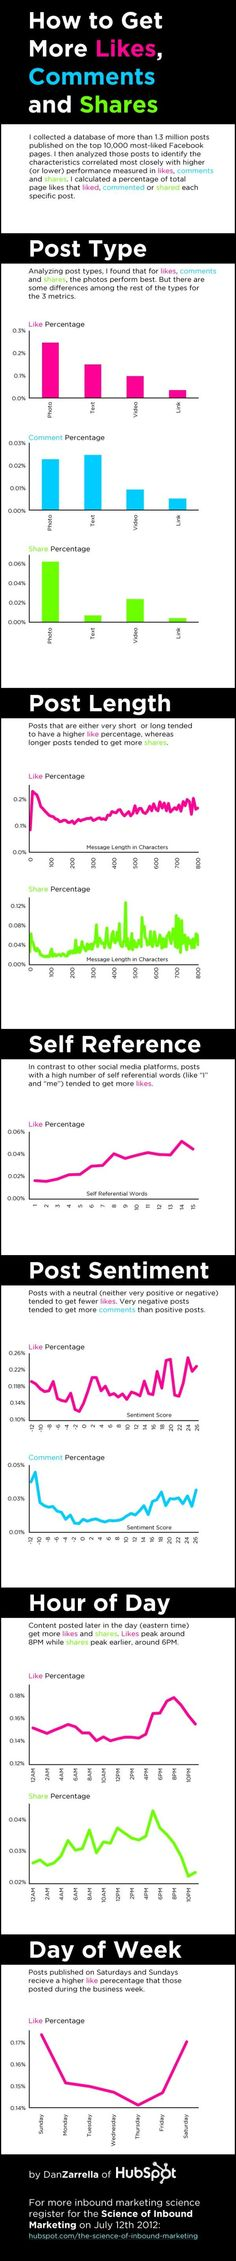 Infographic: How to get more Facebook likes, comments, shares | Articles | Main